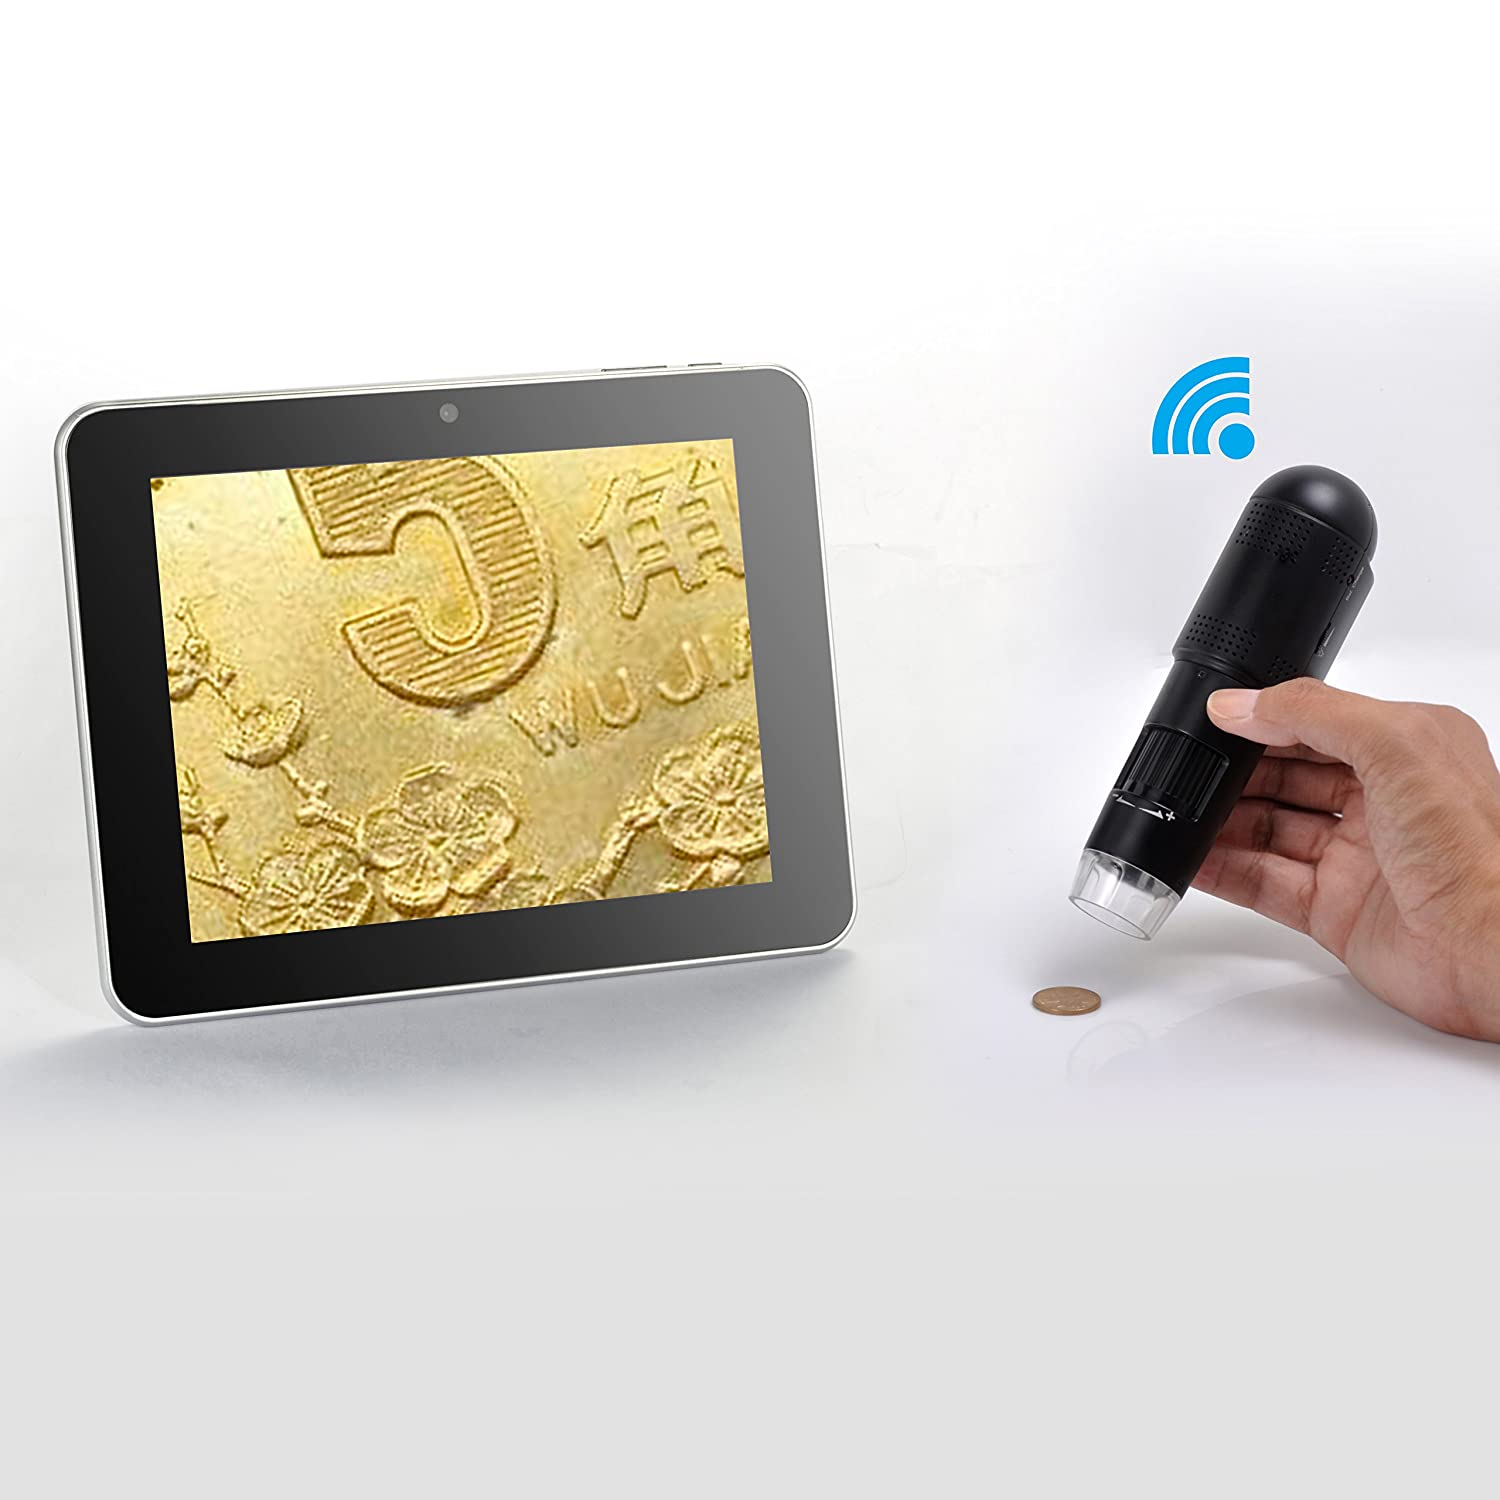 Amazon.com : Mustcam®720P HD Wifi Digital Microscope for iOS/Android ...